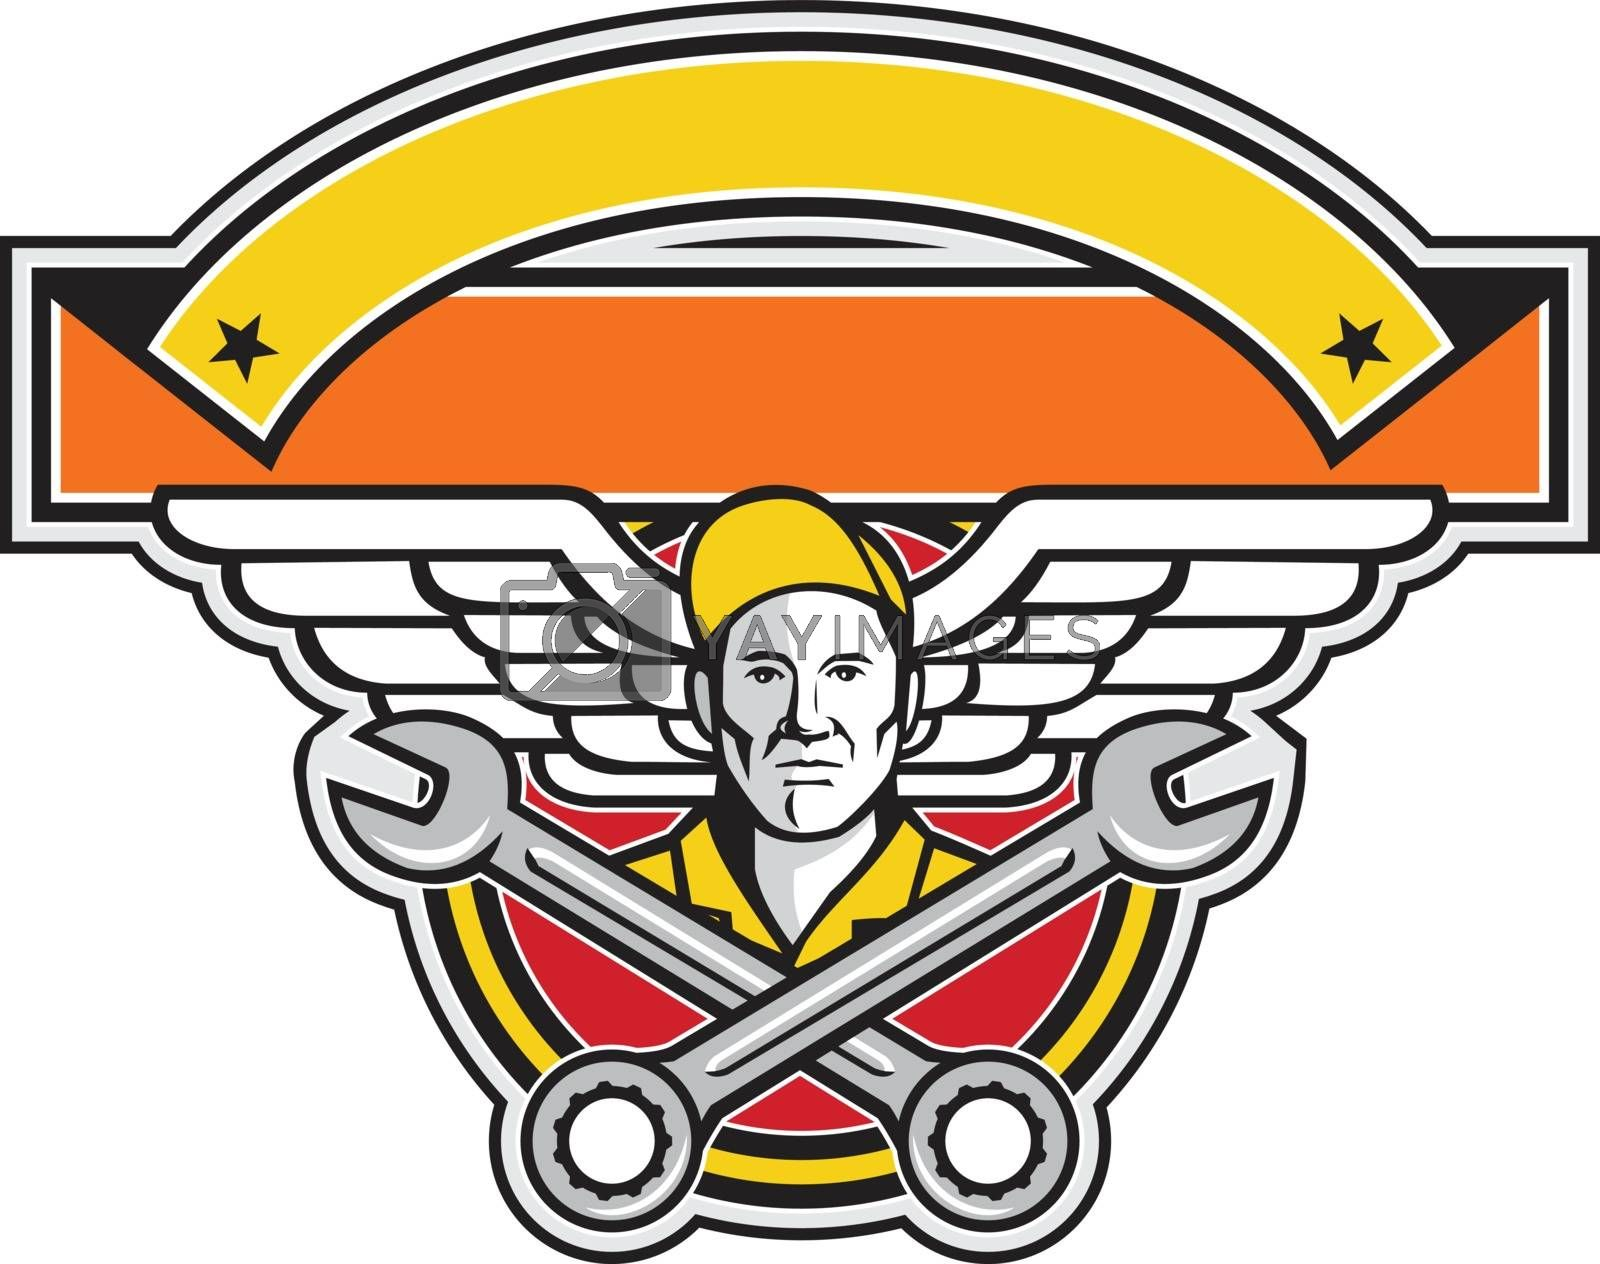 Crew Chief Crossed Spanner Army Wings Banner Icon by patrimonio